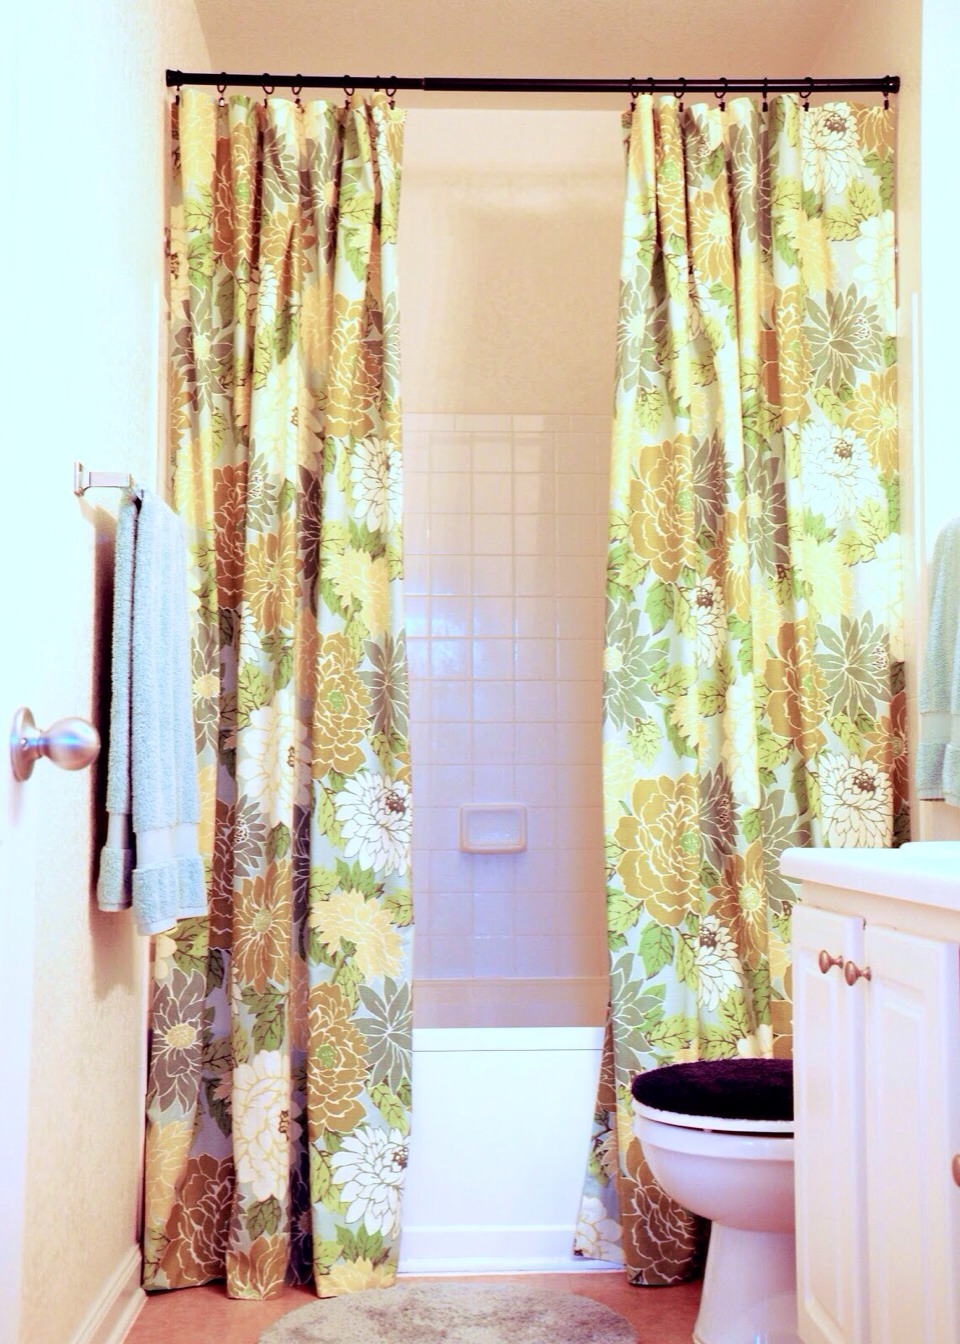 Double Sided Shower Curtain 28 Images Cheap Fabric Shower Curtains Tags Shower Curtain Rings